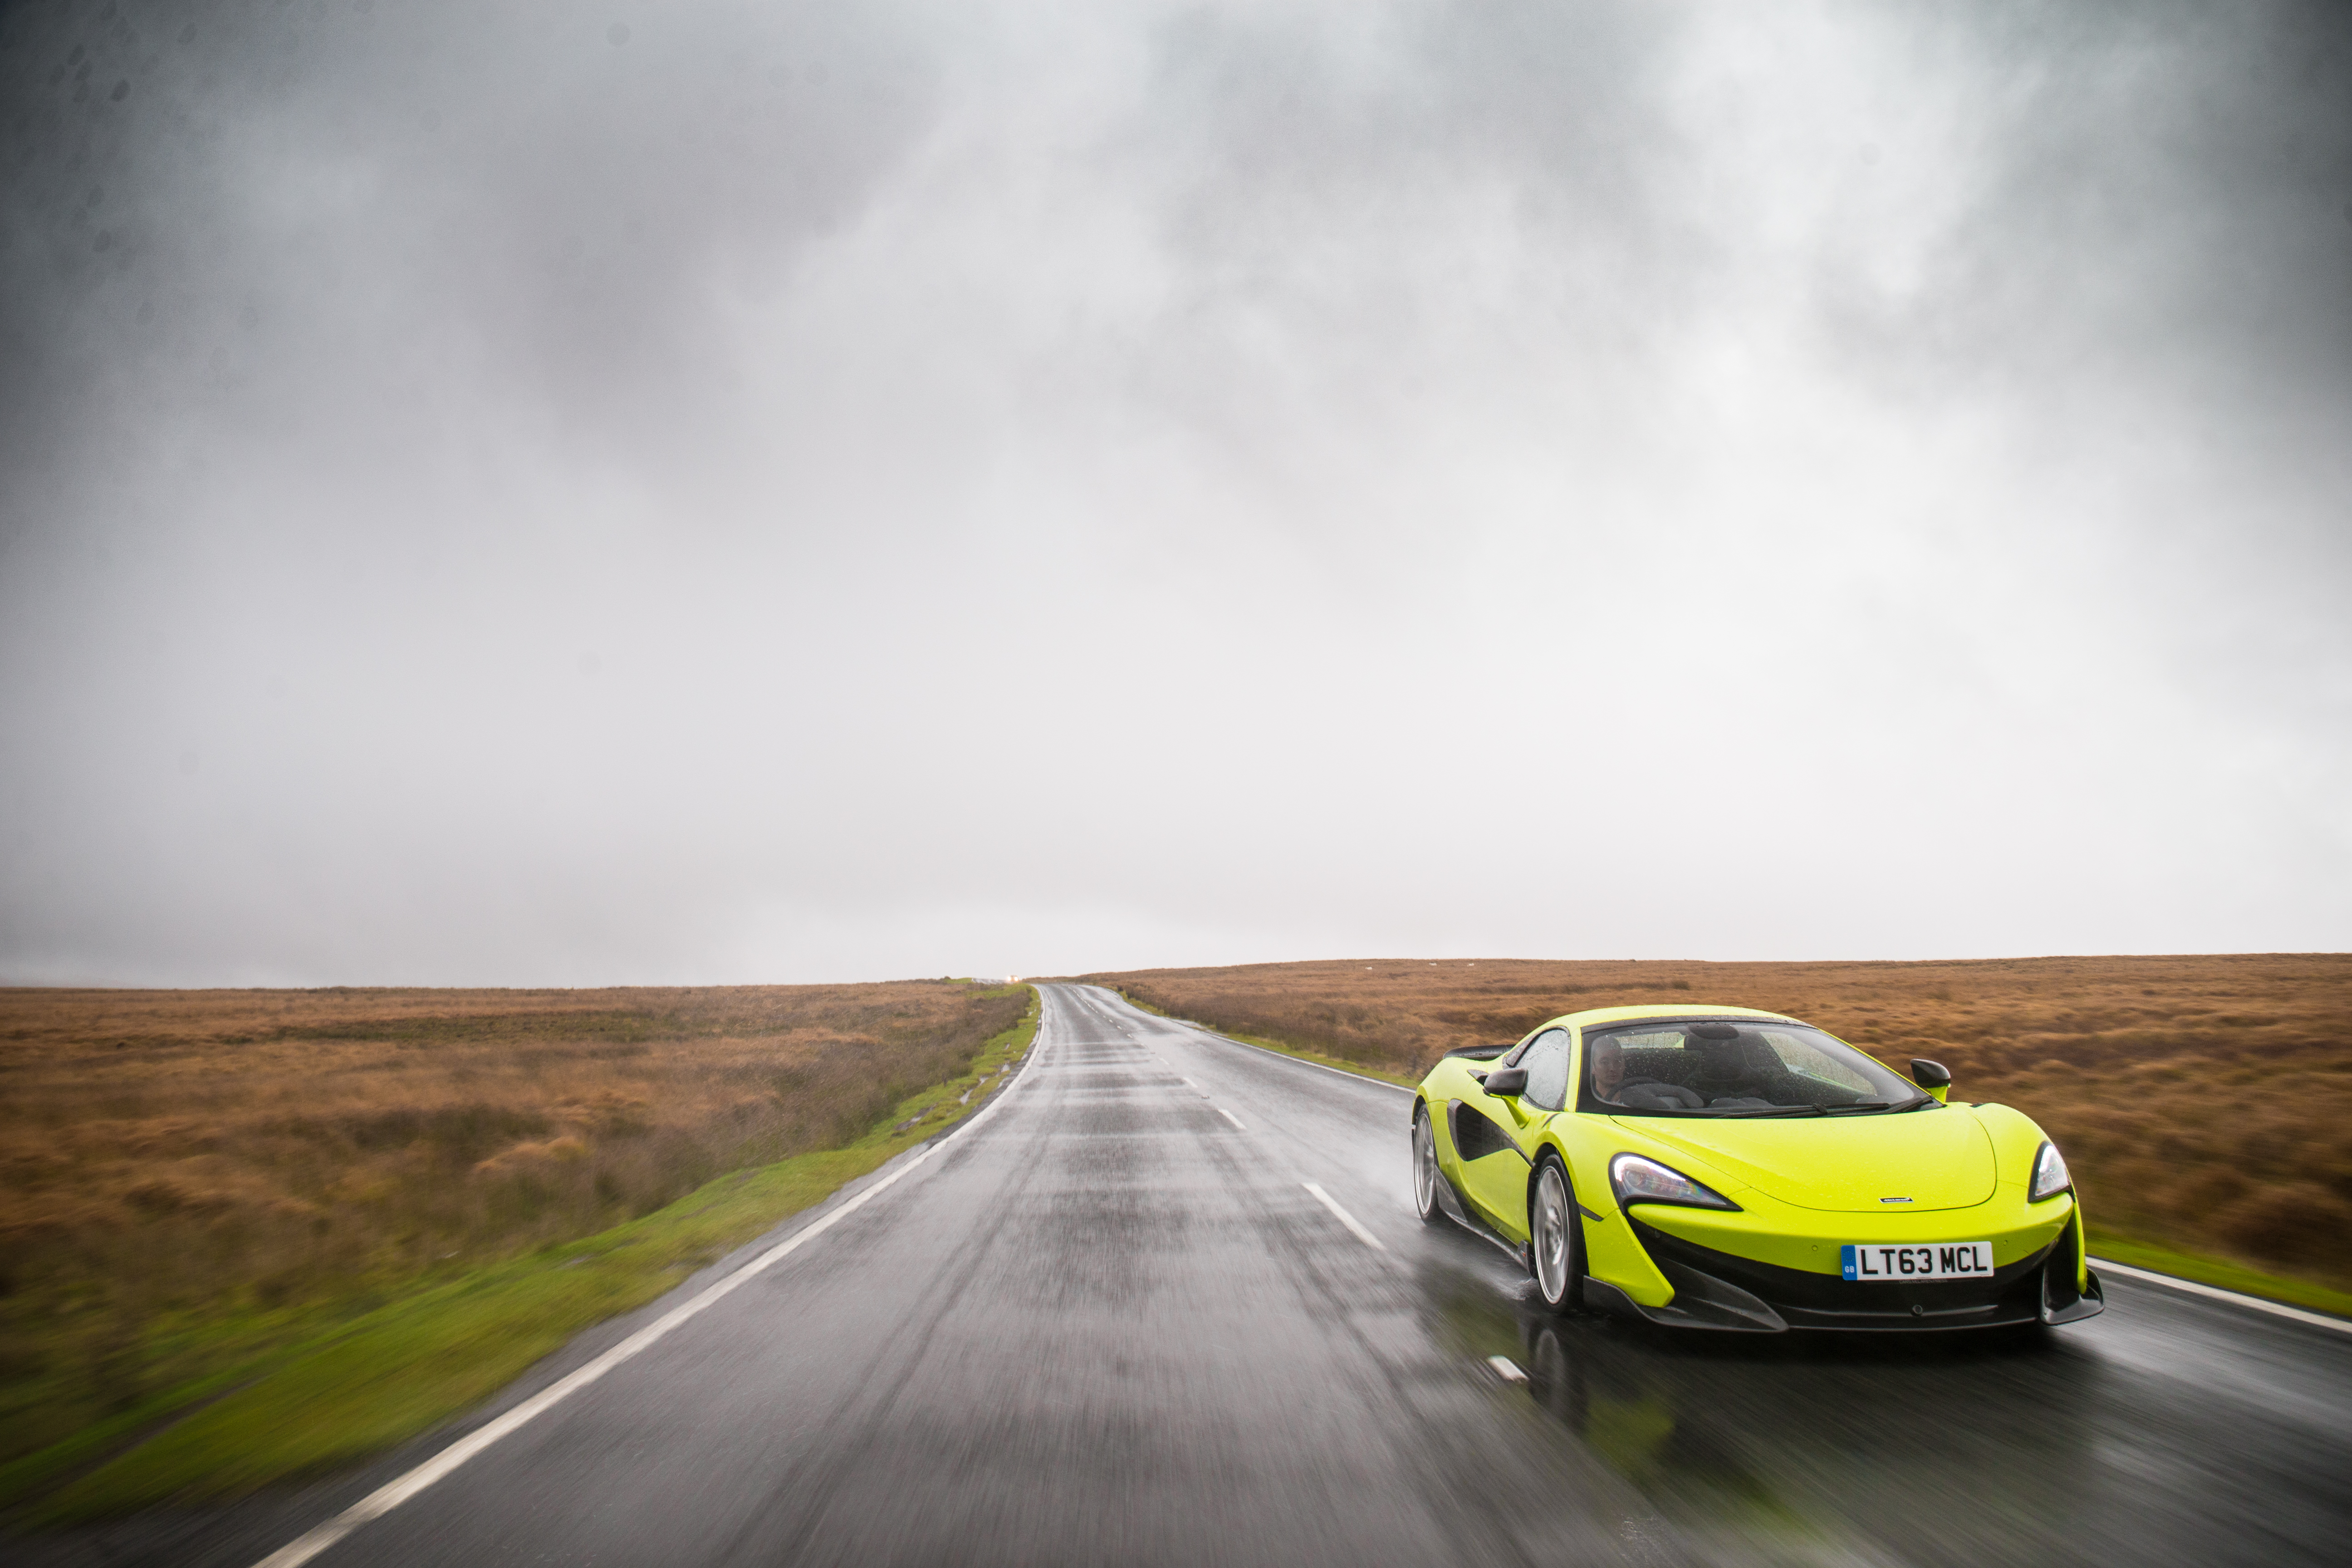 Slick tyres and wet roads make driving a challenge